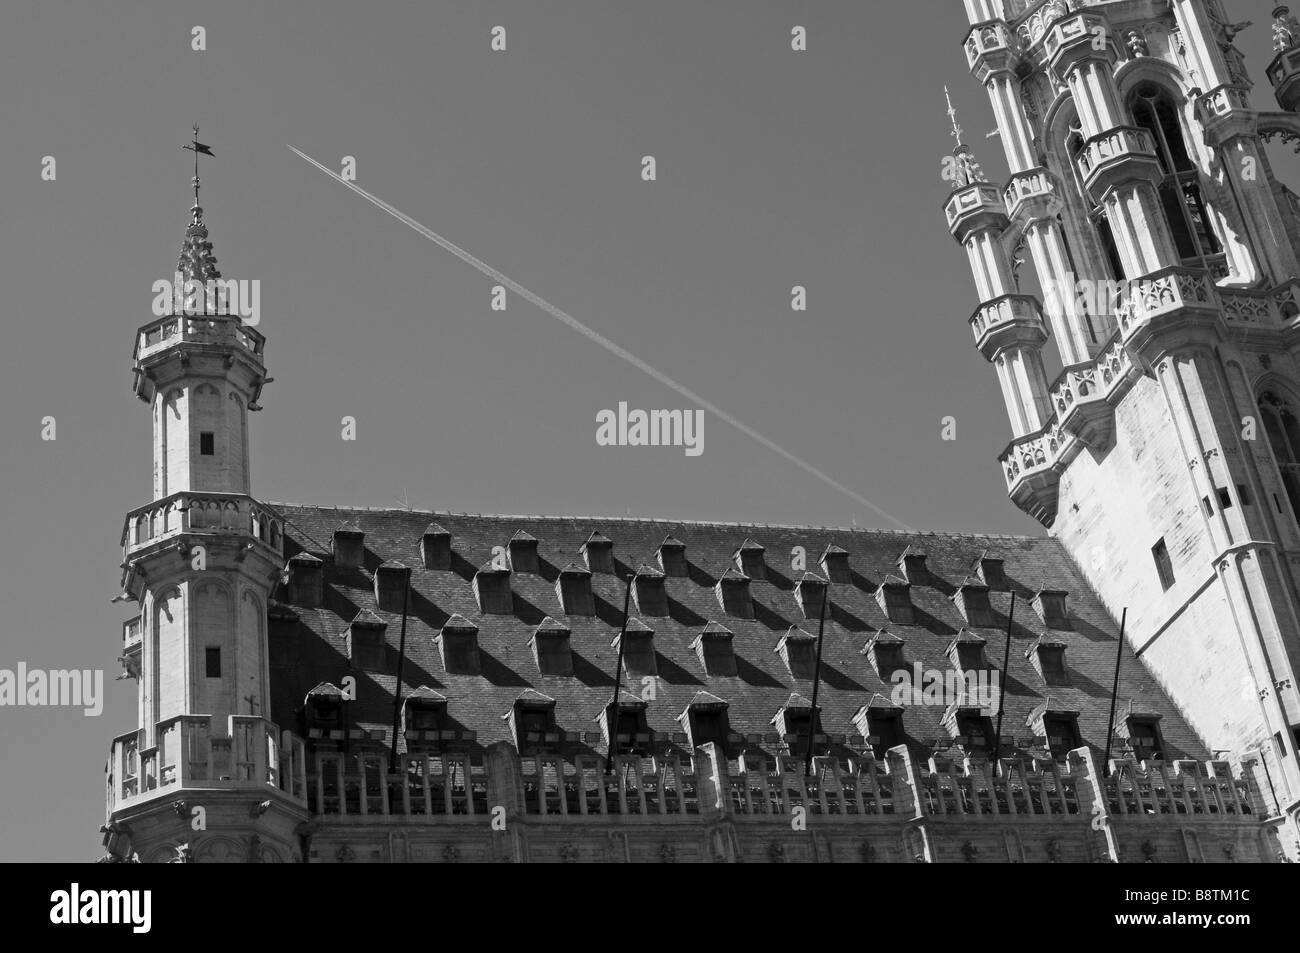 Roof of Town Hall  building, Grand Place, Brussels, Brussels, Belgium, Europa - Stock Image